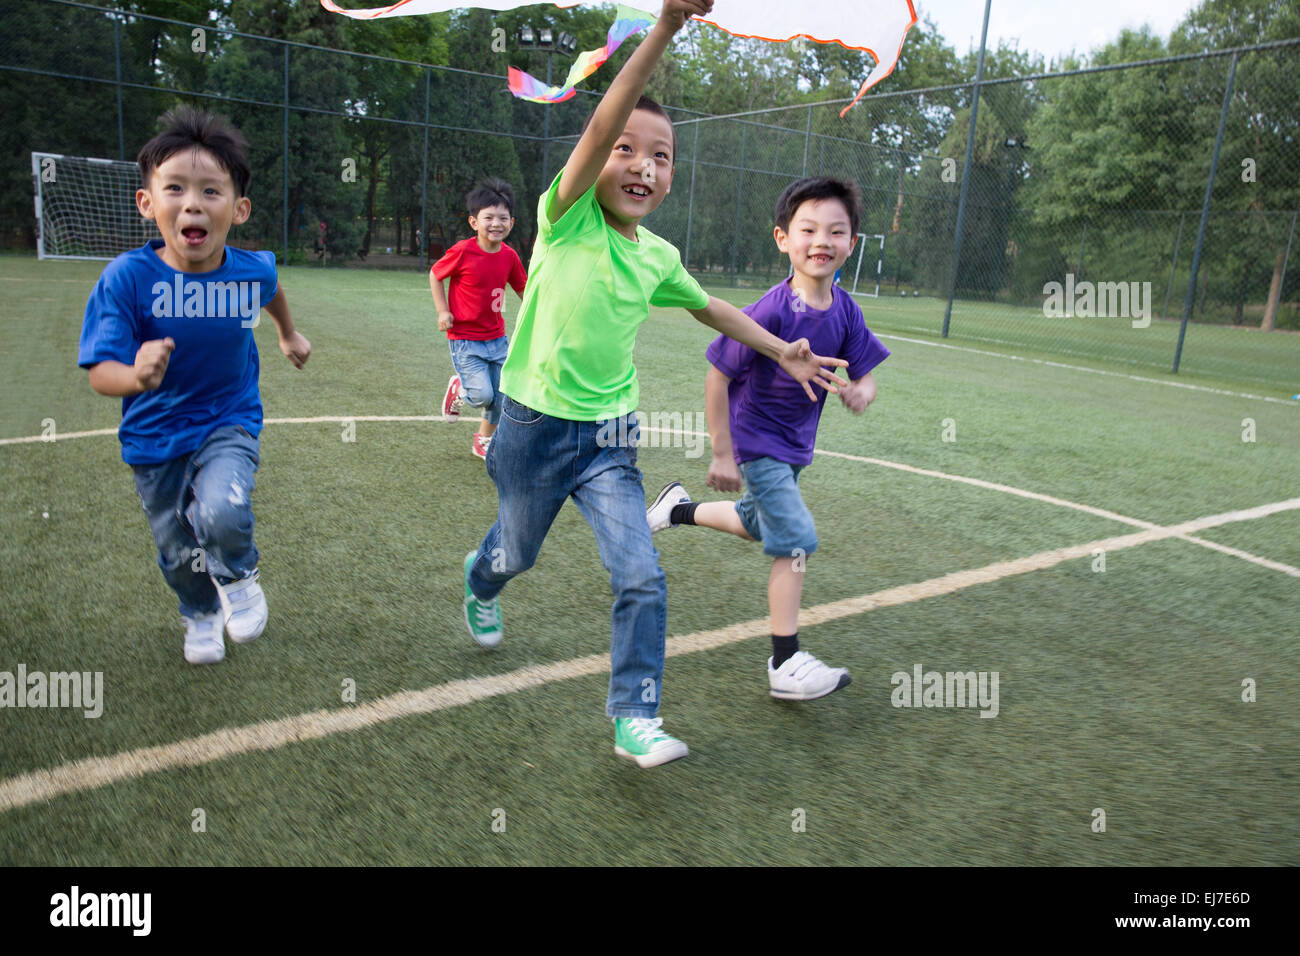 The boys are flying kites in the grass - Stock Image